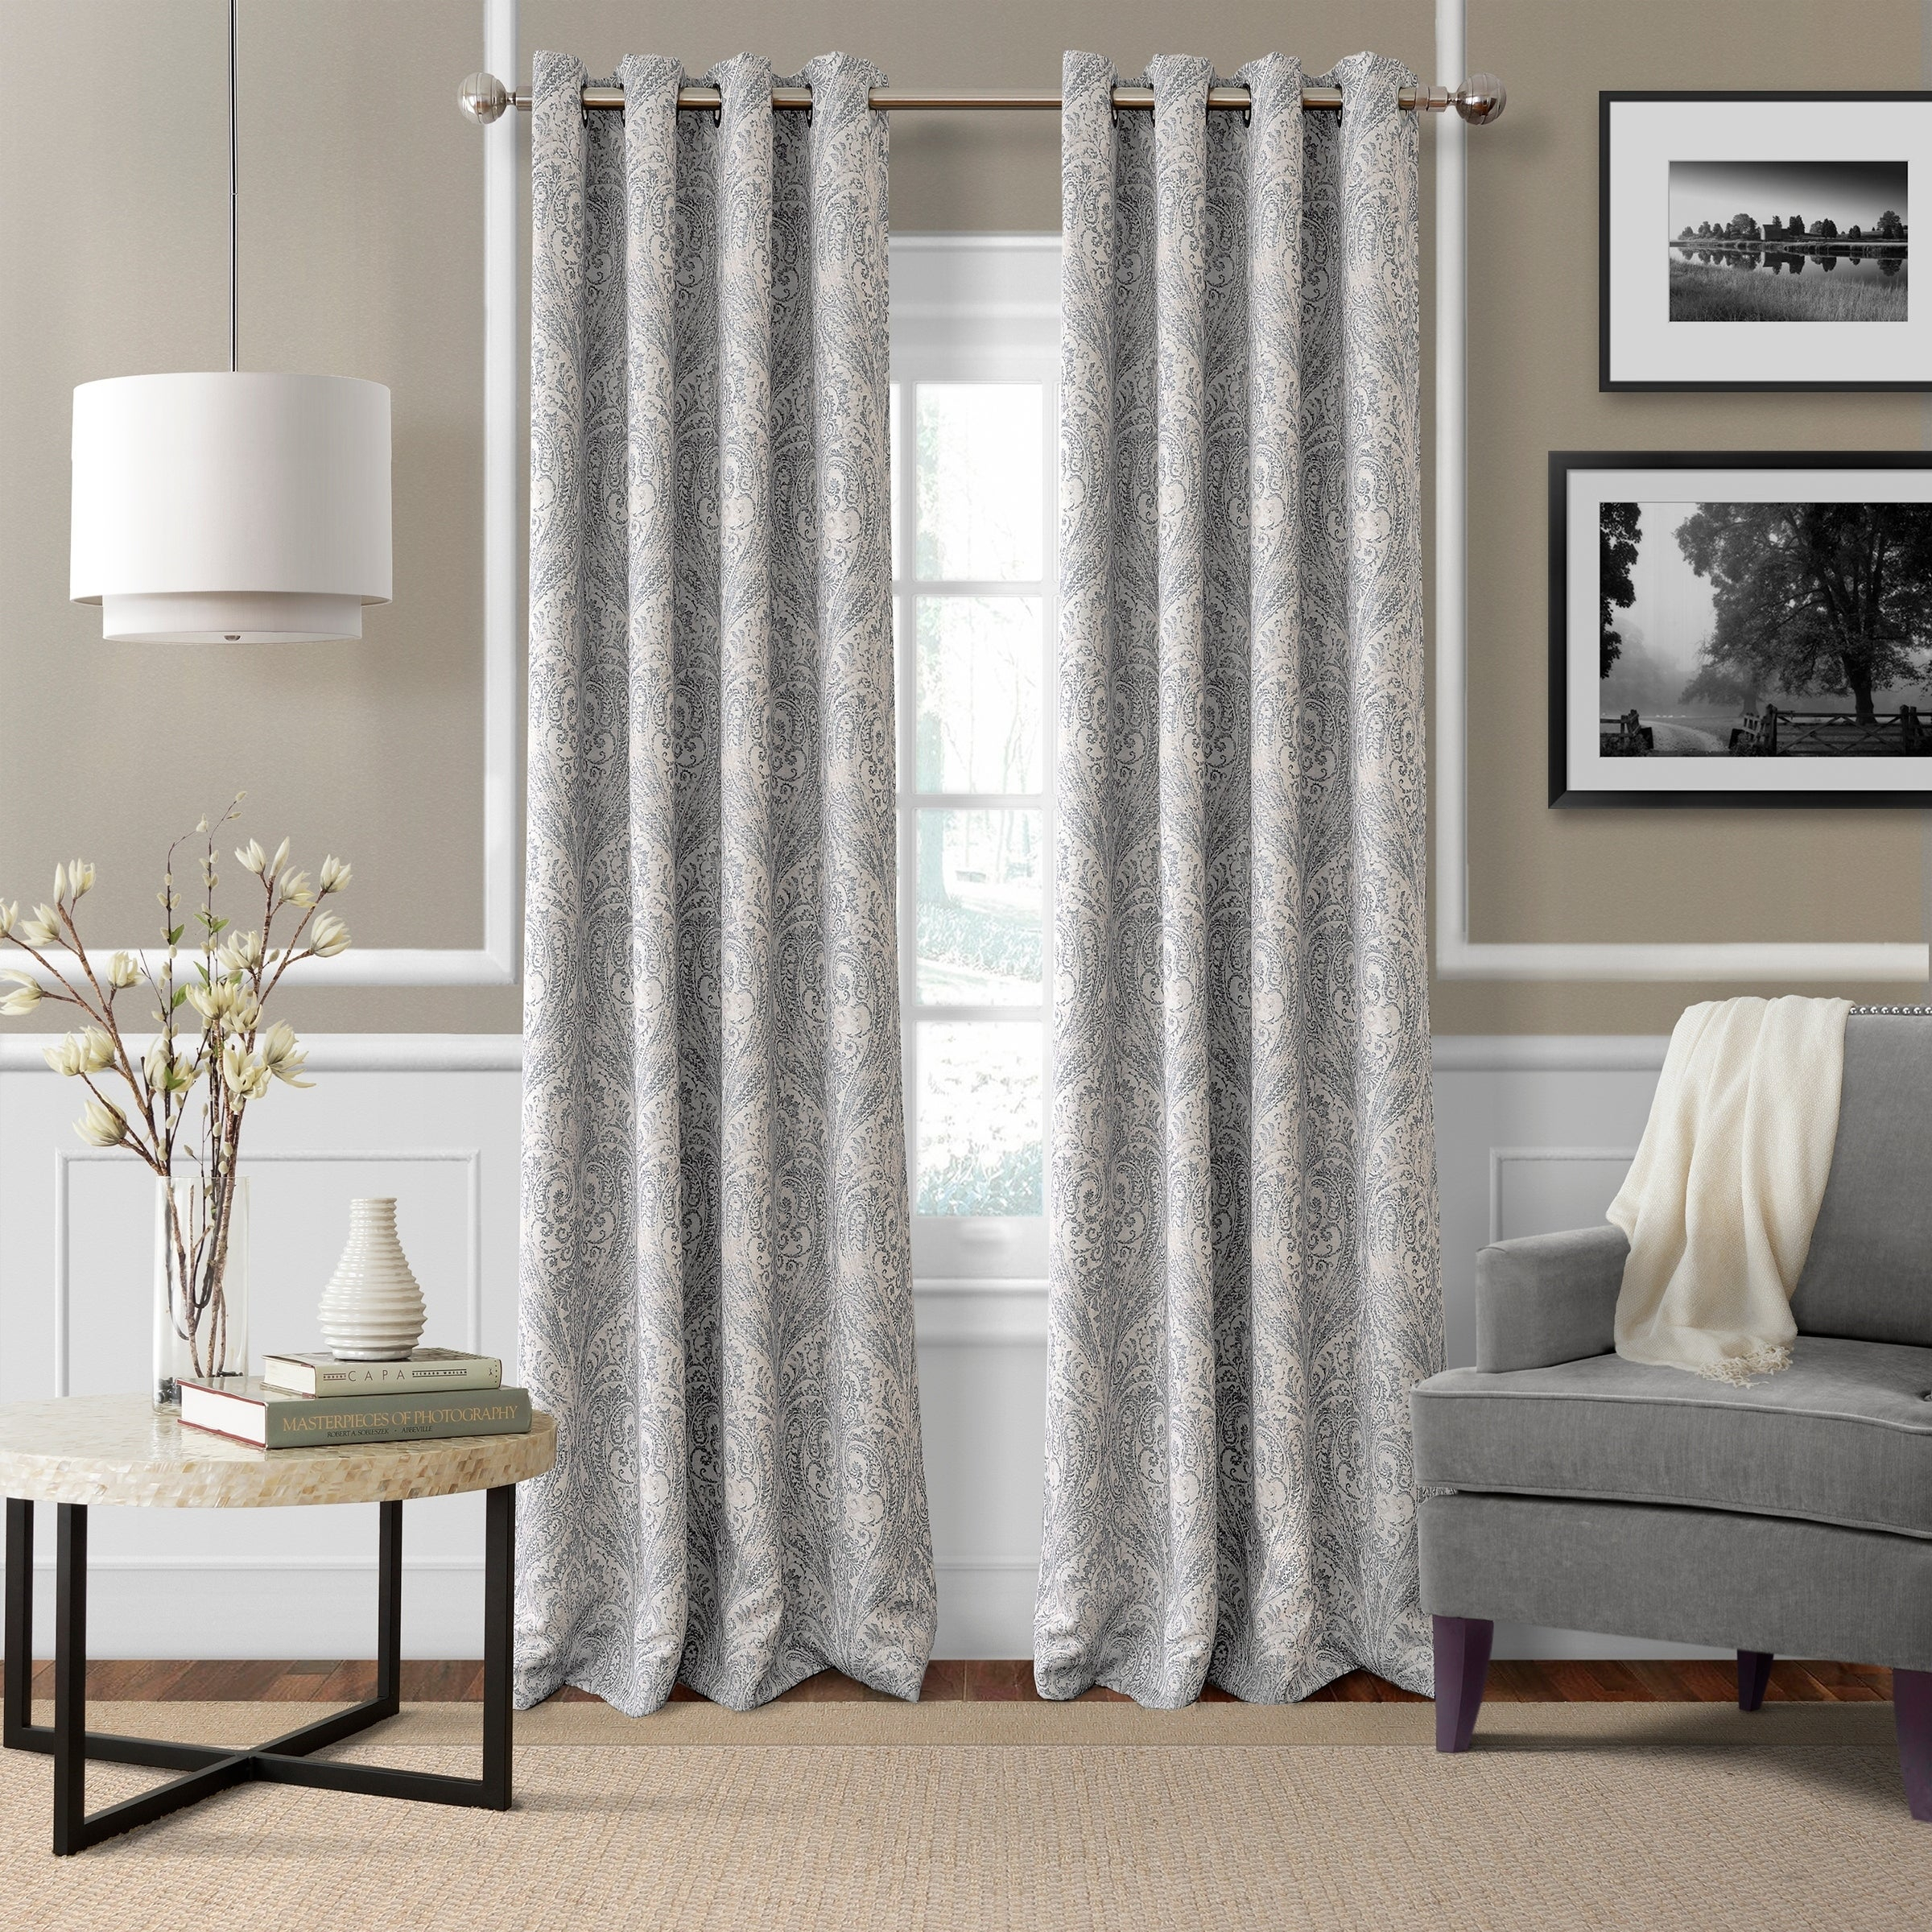 Details About Porch & Den Patrick Room Darkening Grommet Top Curtain Panel regarding Porch & Den Park Point Blush 24-Inch Tier Pairs (Image 11 of 20)